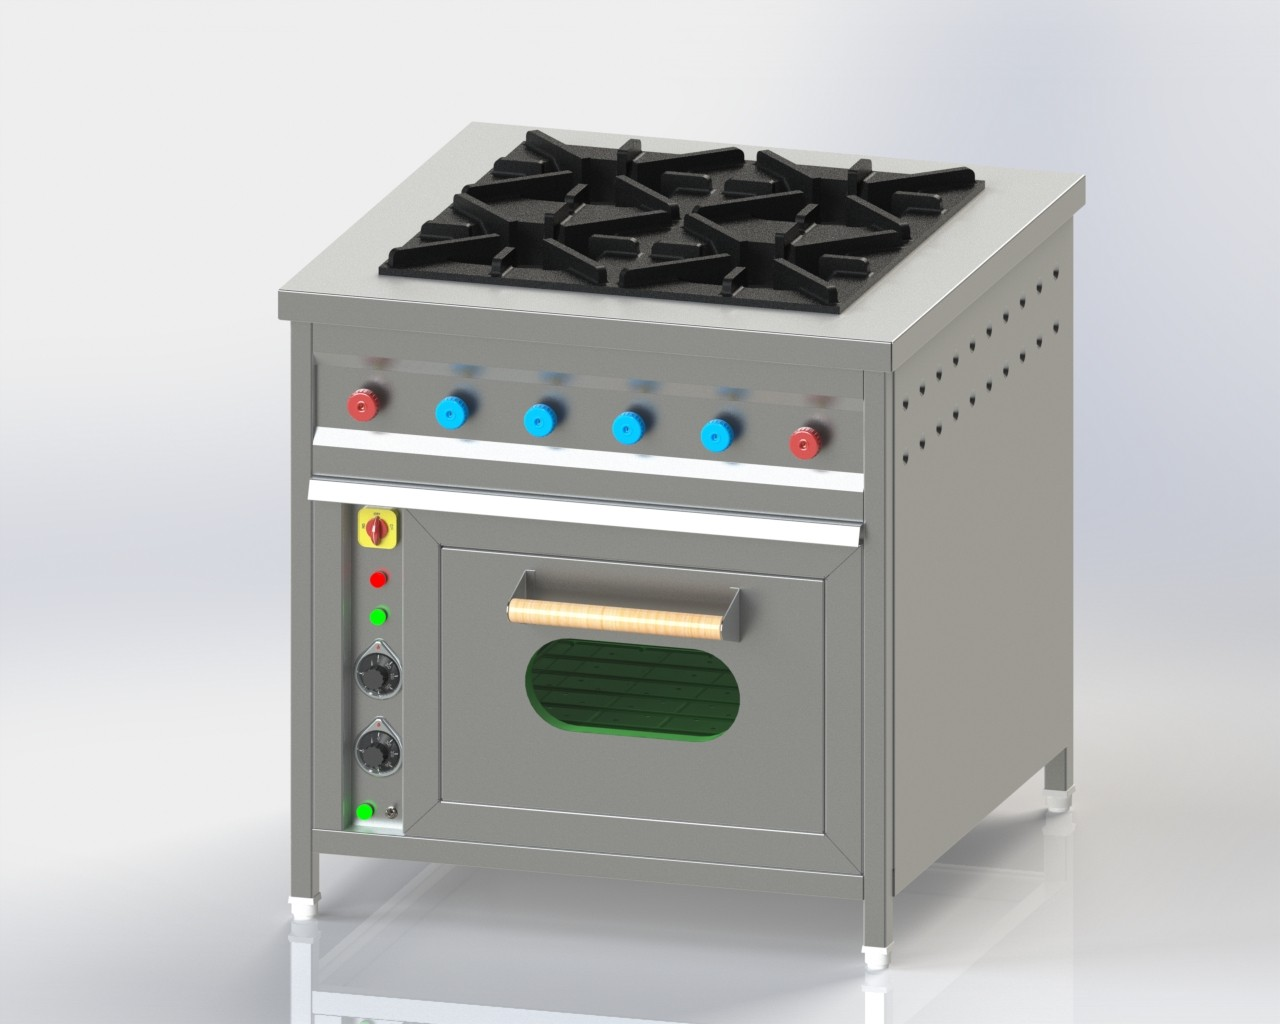 Four Burner with Below oven